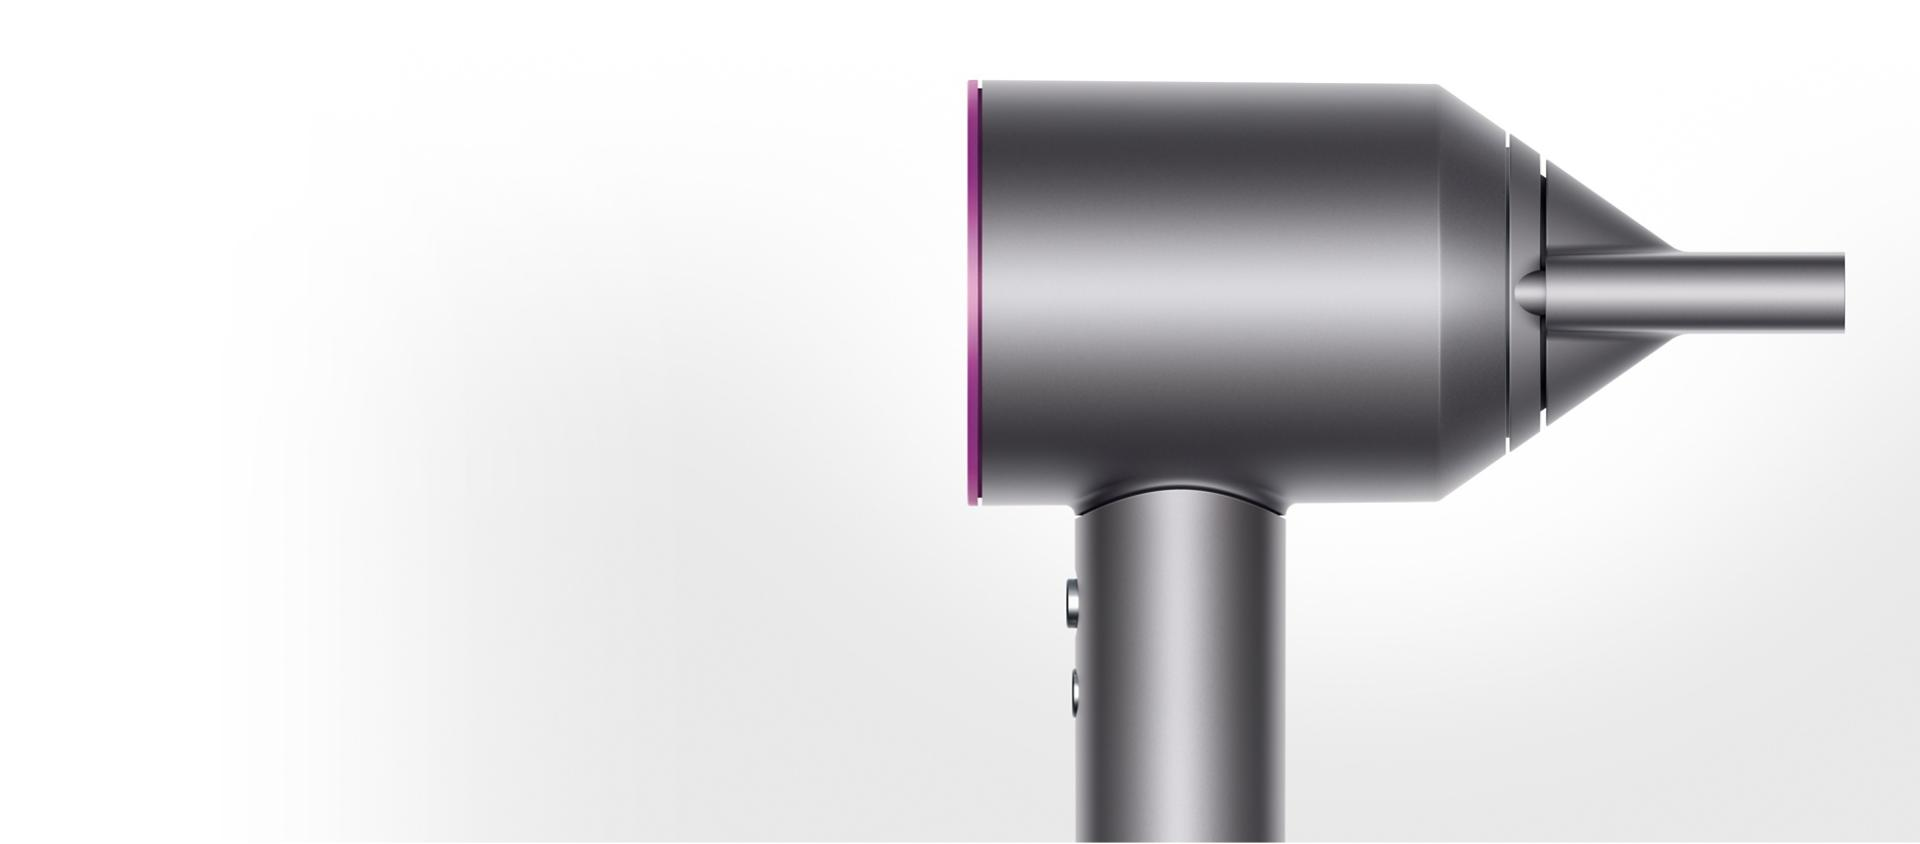 Dyson Supersonic™ hair dryer side profile